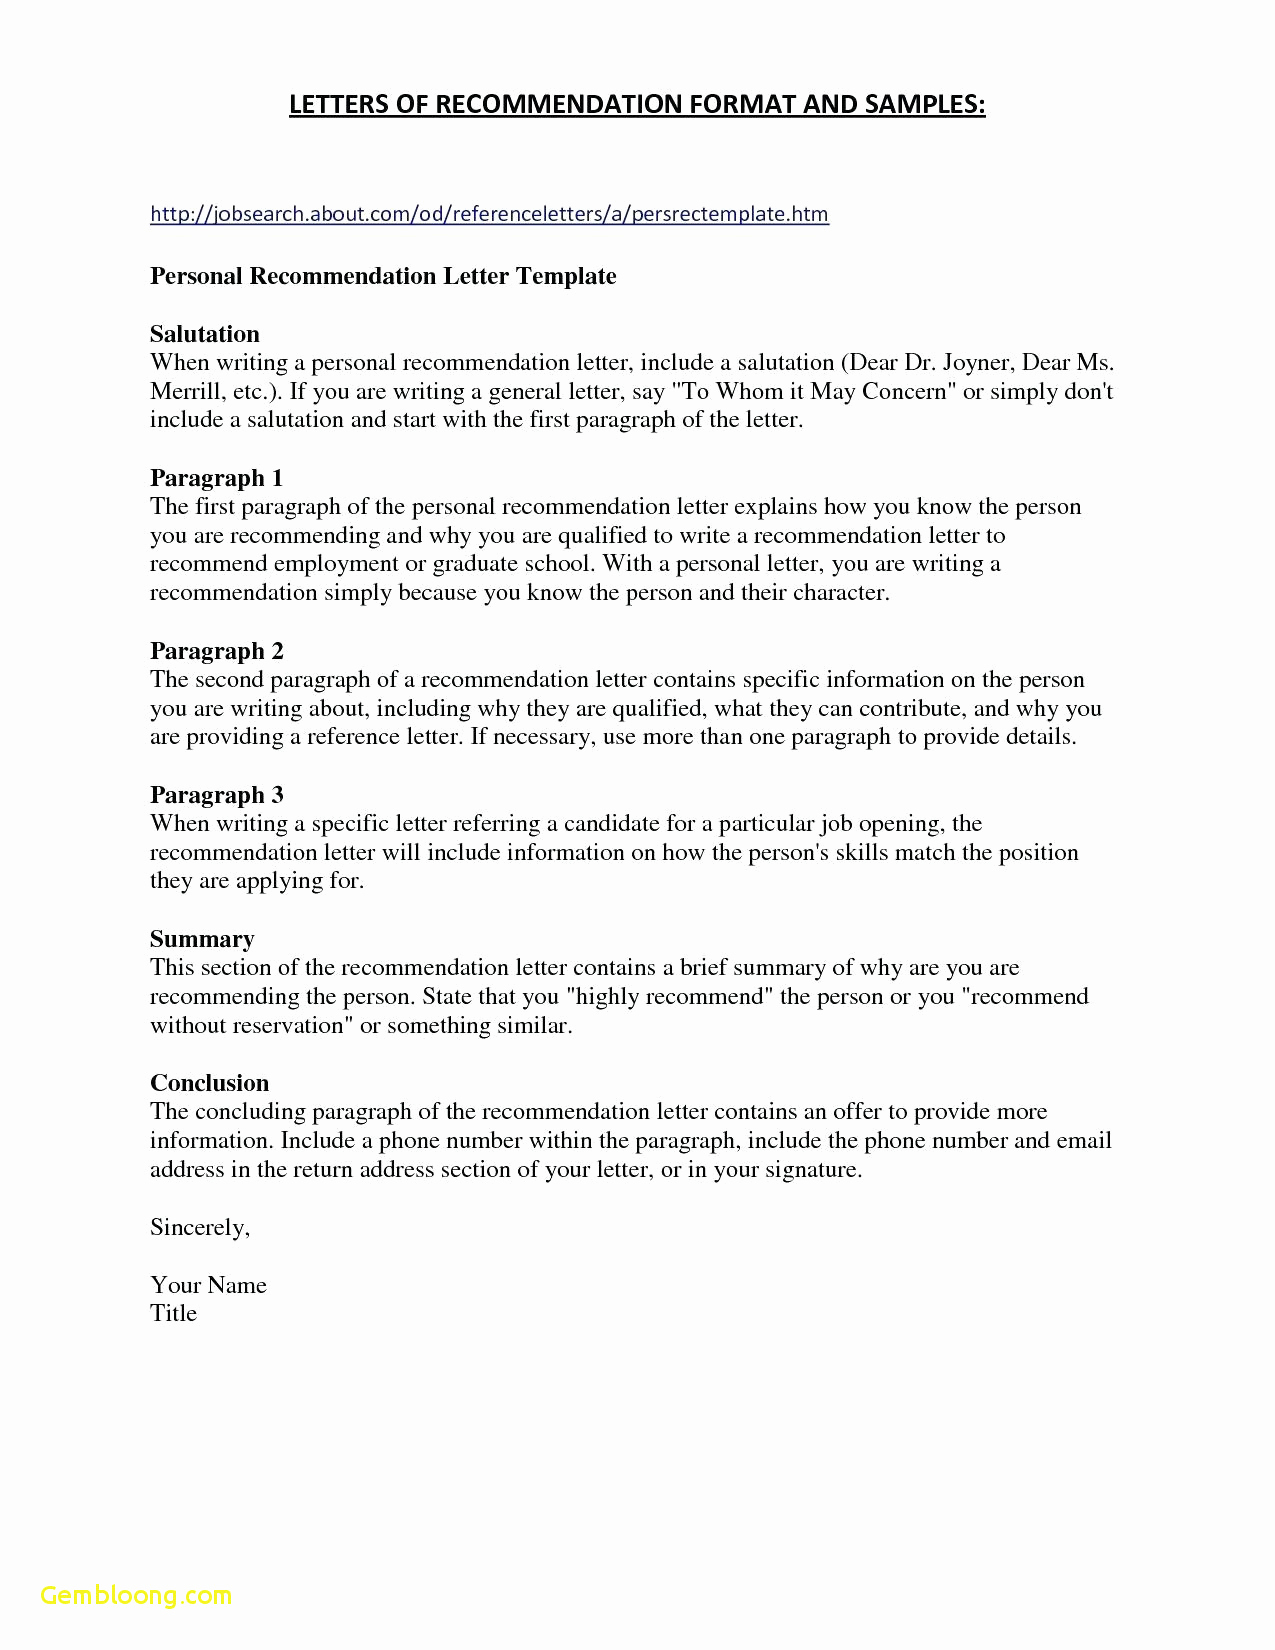 Customer Reference Letter Template - Personal Re Mendation Letter for Employment Lovely References for